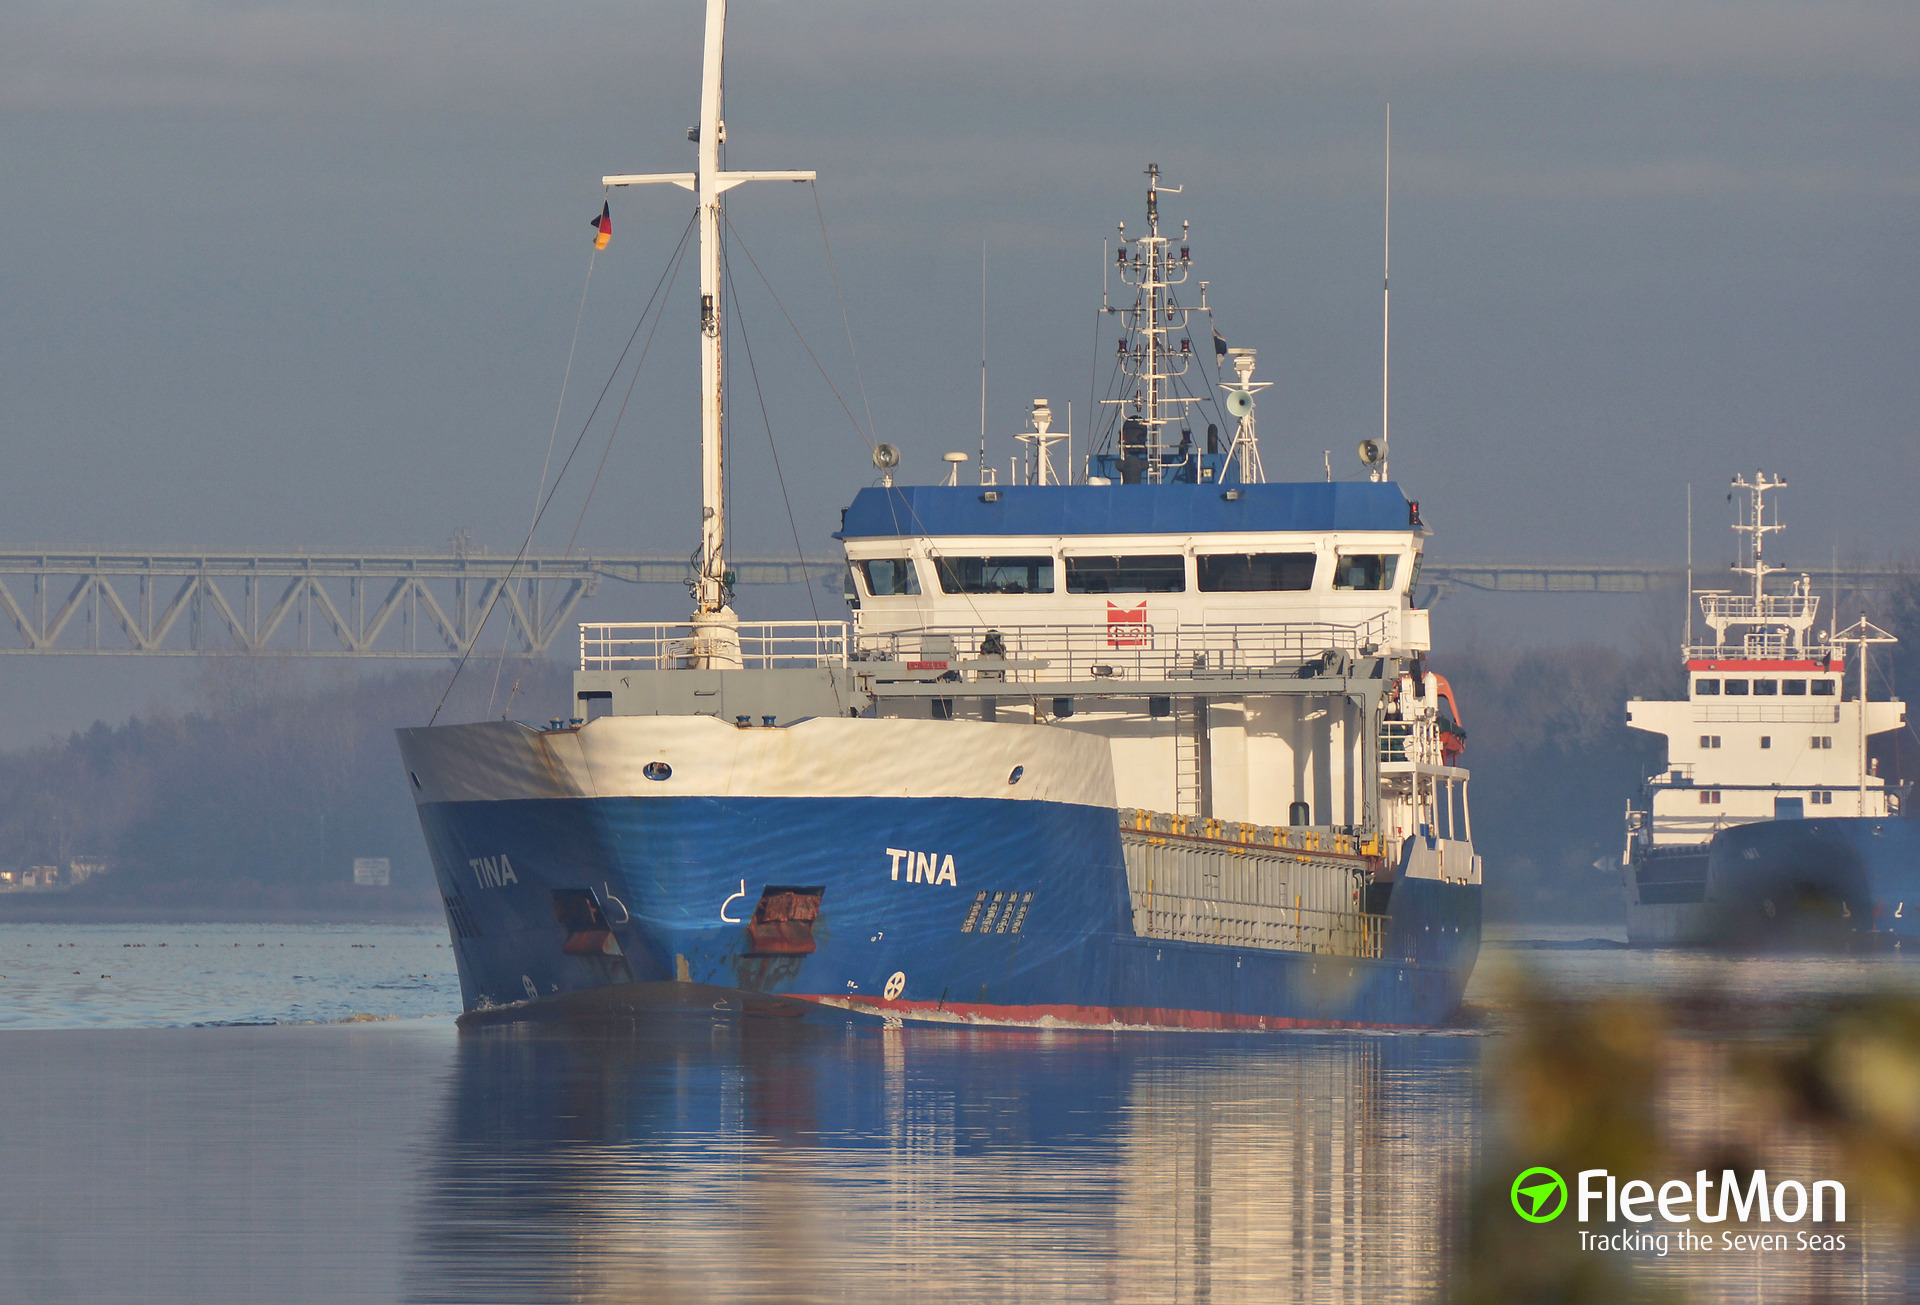 Freighter Tina towed to Papenburg after engine failure